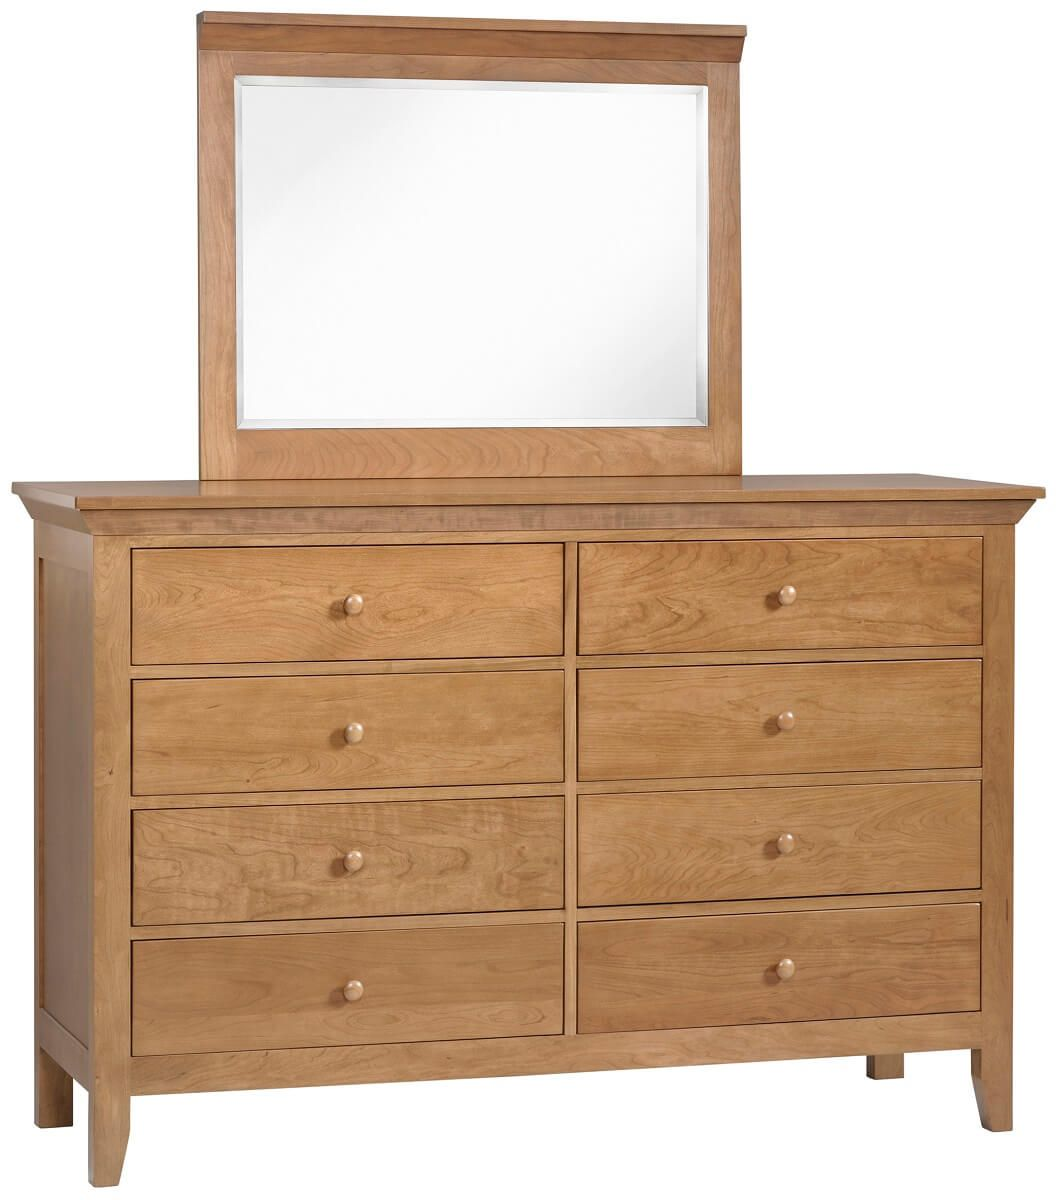 Beauford Tall Dresser with Mirror